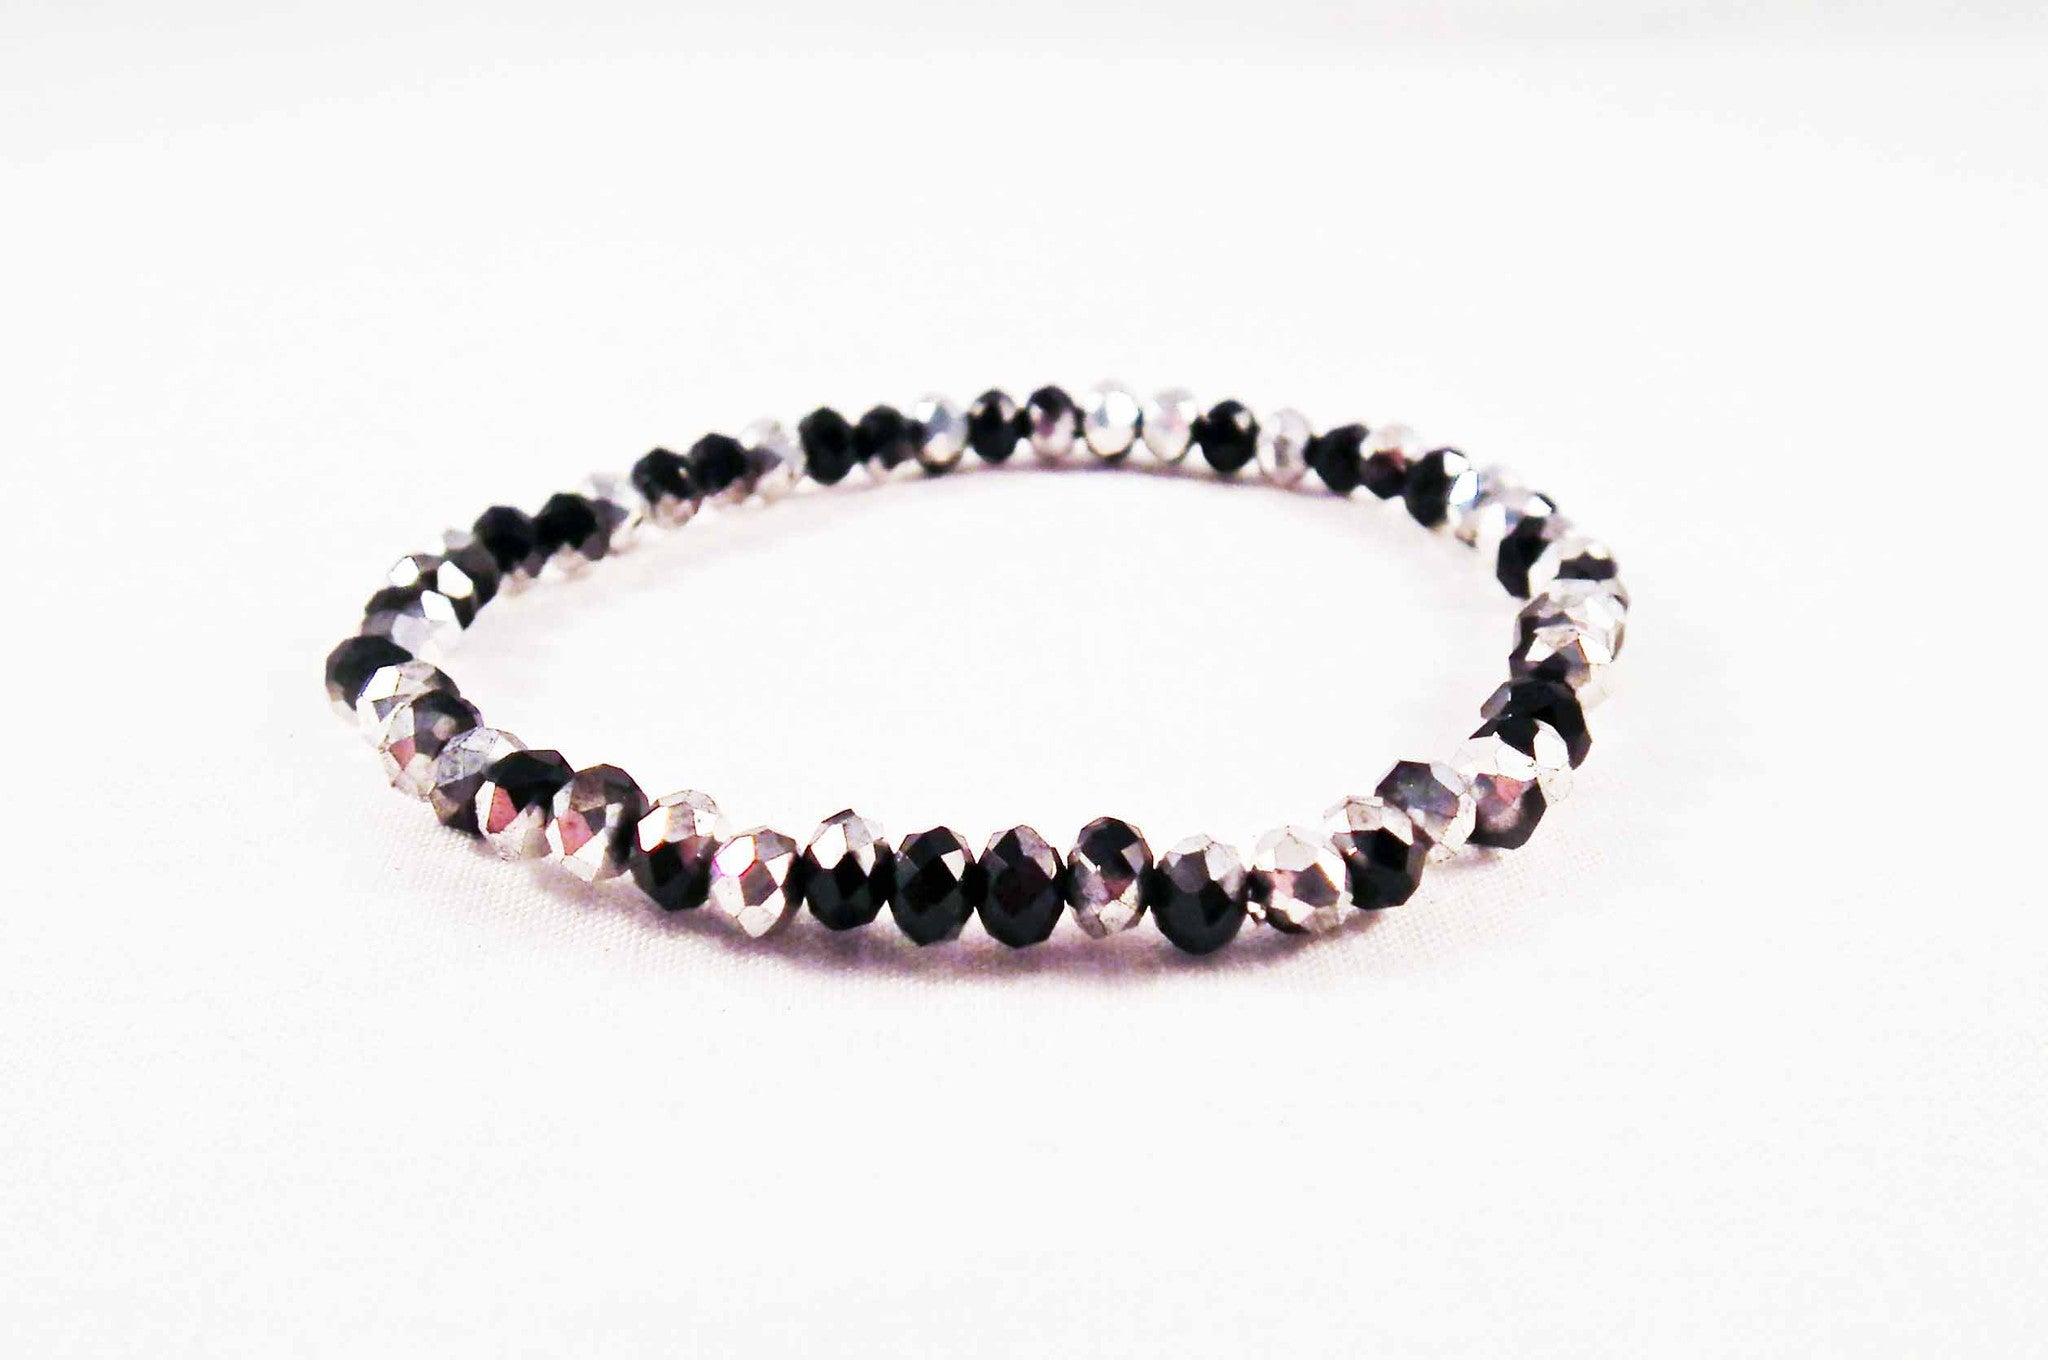 Swarovski Black Silver Crystal Bracelets No Mercy Making